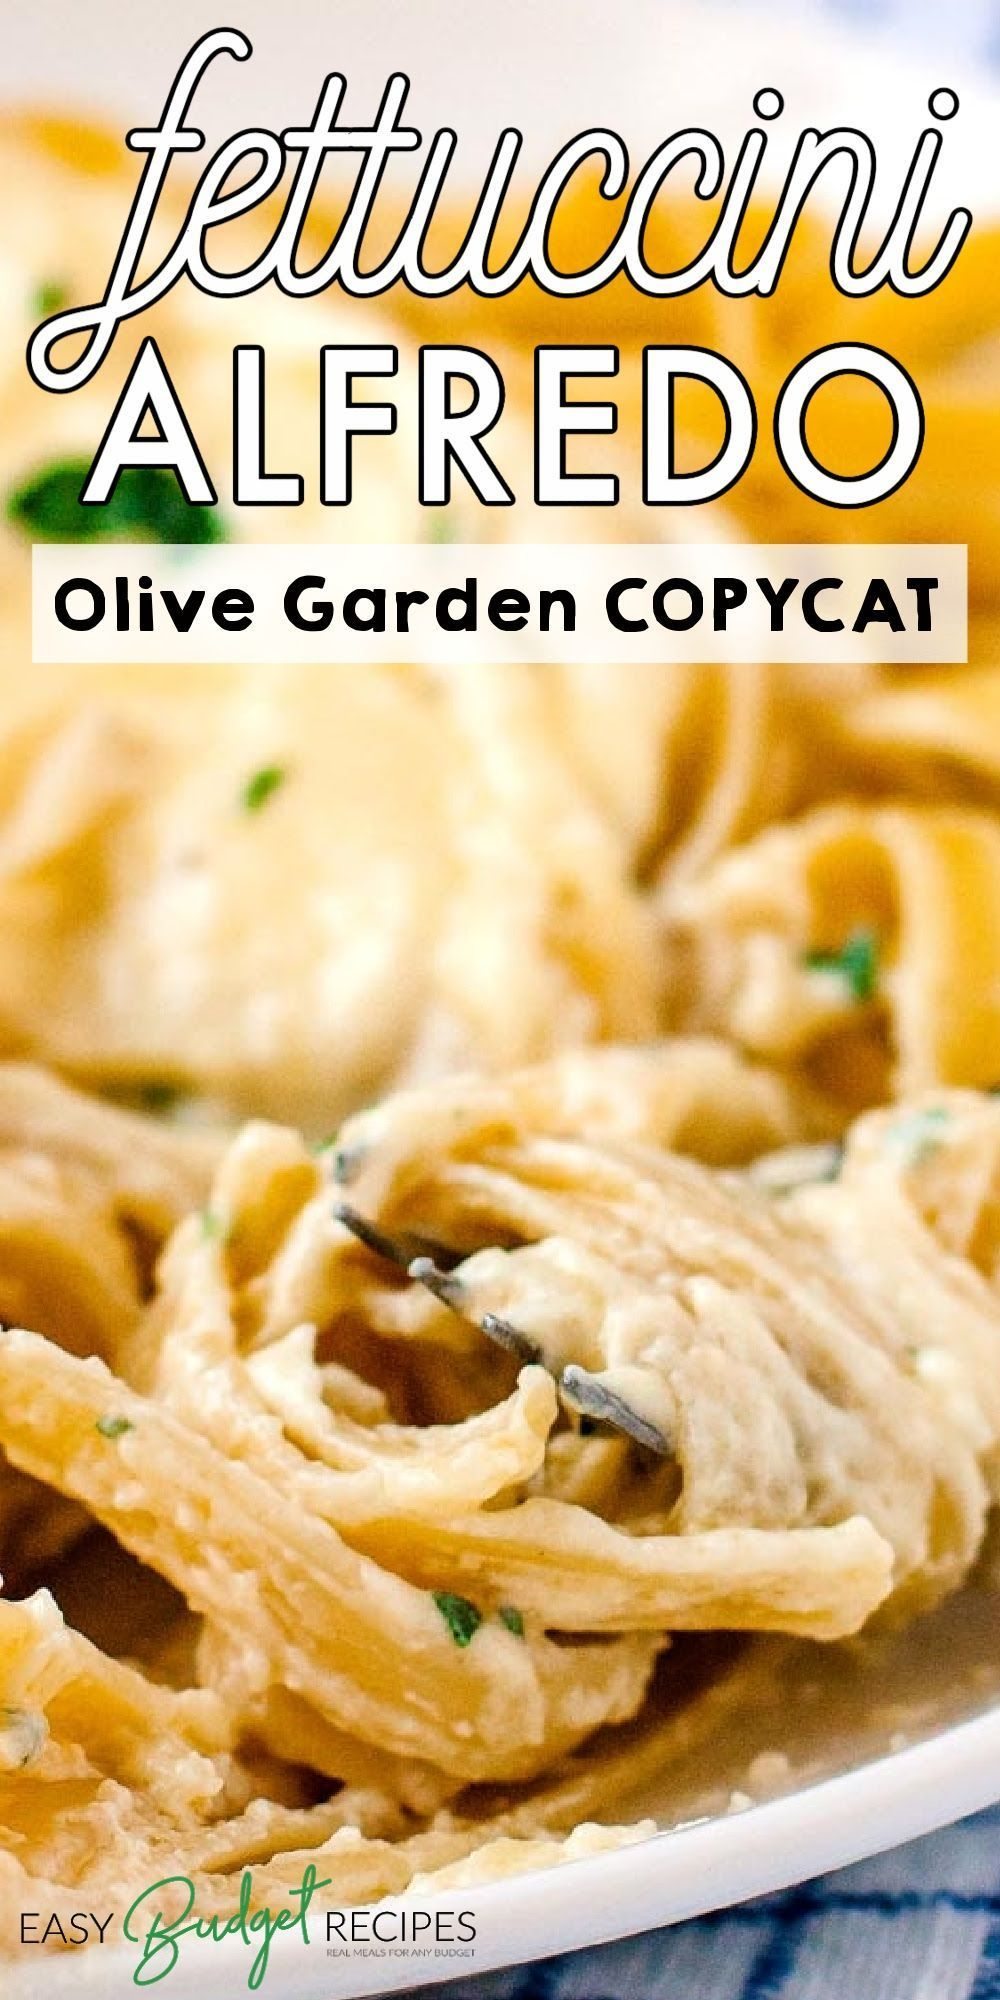 This Copycat Olive Garden Fettuccine Alfredo recipe takes just 30 minutes to make and is incredibly delicious. For more quick and easy recipes follow Easy Budget Recipes!